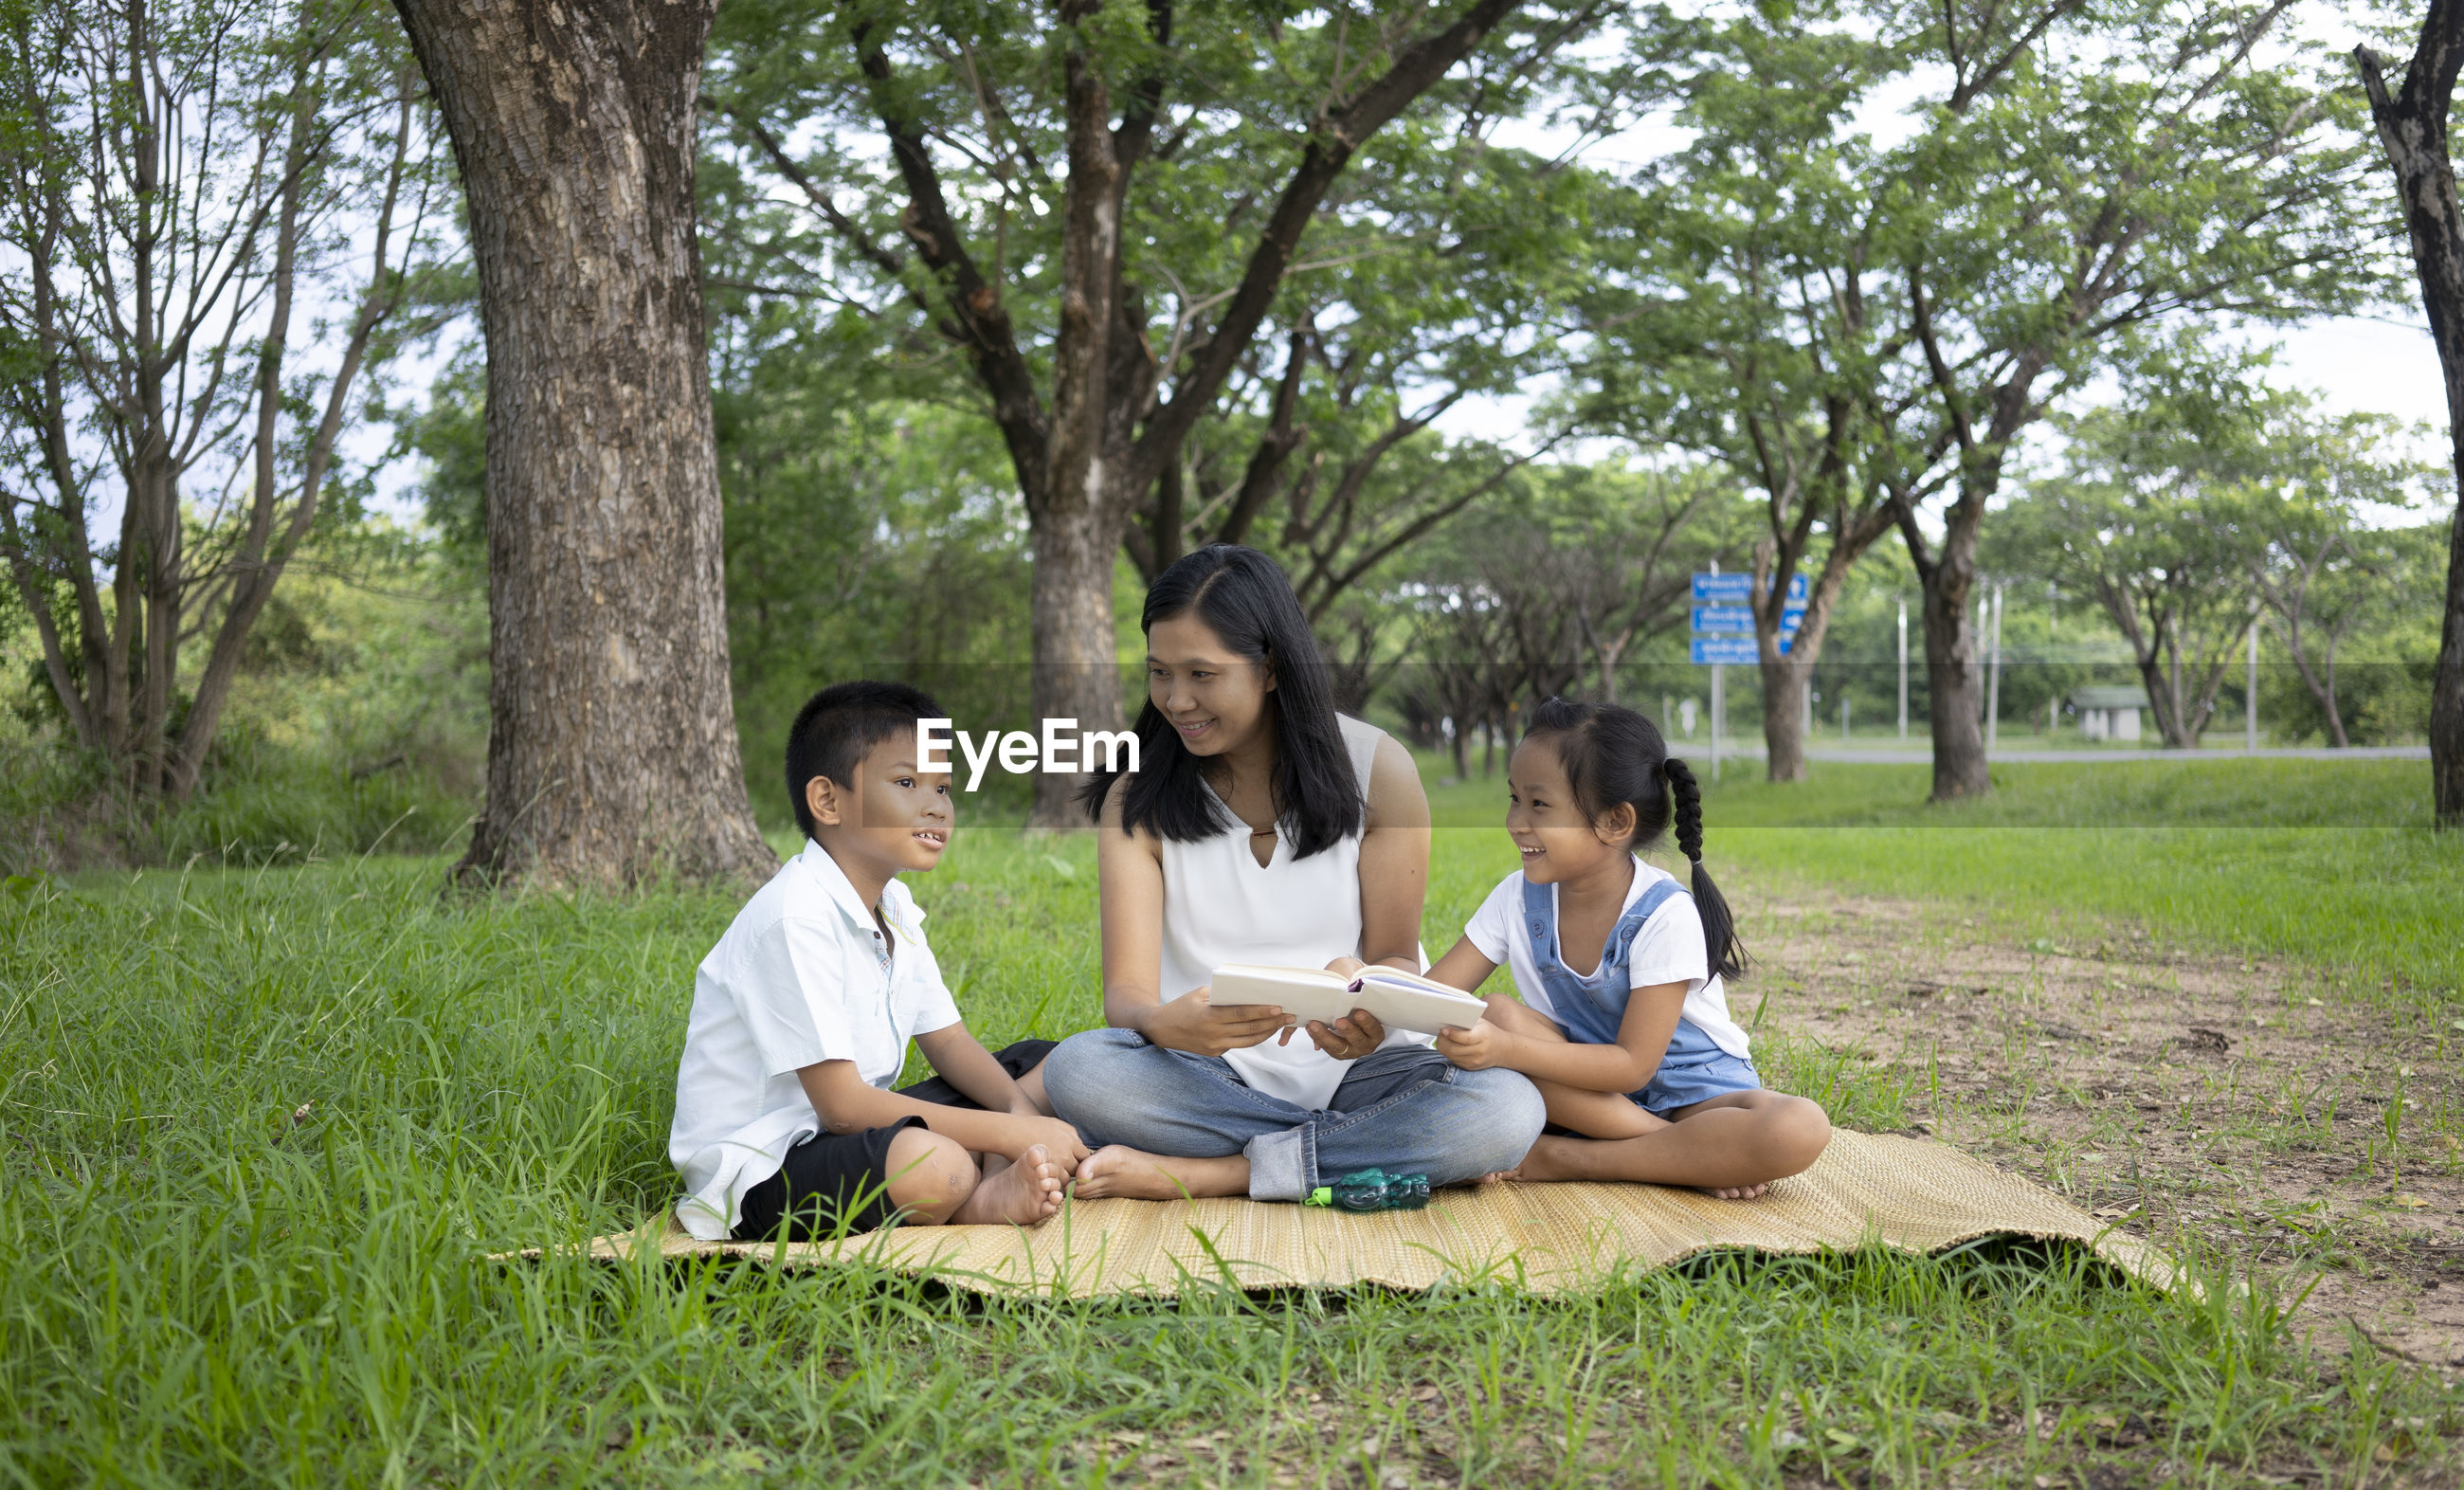 Family reading book while sitting on grass against trees